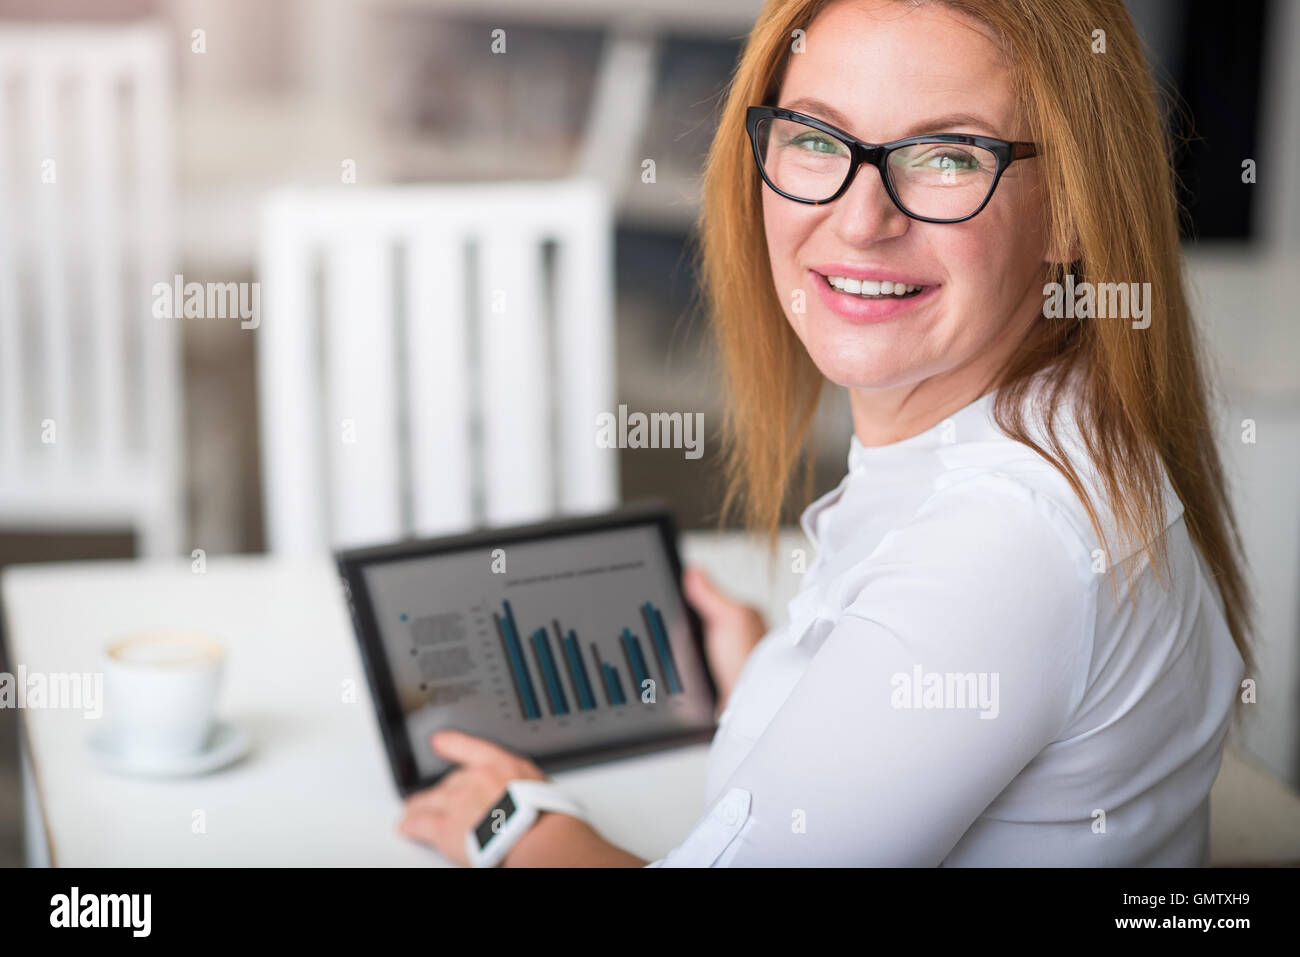 Joyful woman using tablet - Stock Image